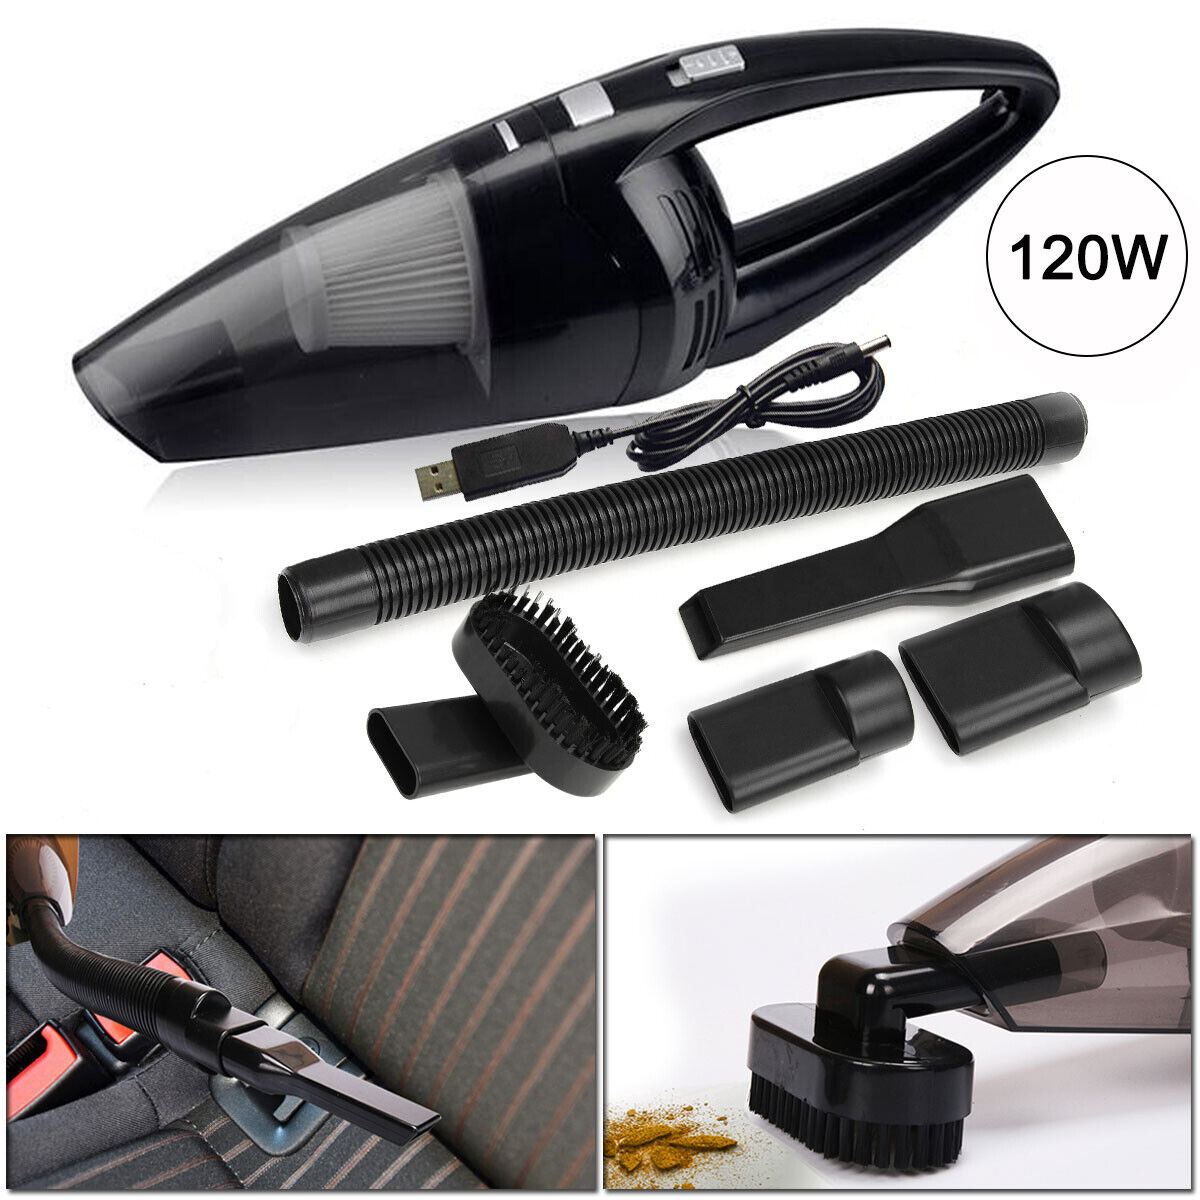 2019 Cordless Car Vacuum Cleaner Home Rechargeable Wet/Dry H